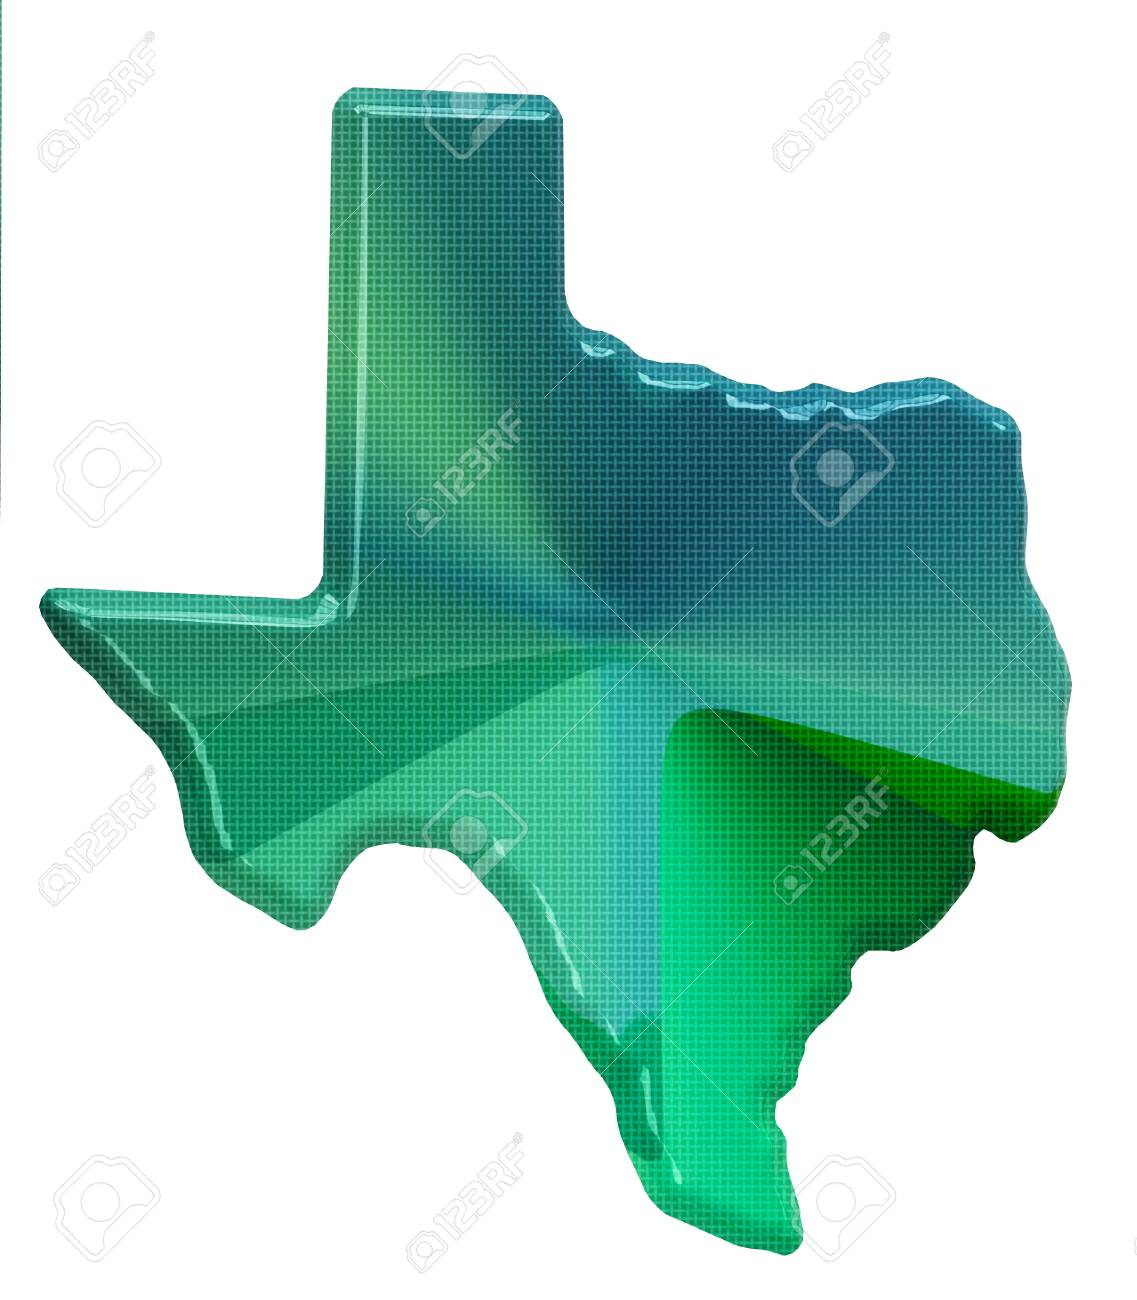 3d Map Of Texas.Map Of Texas In 3d Style